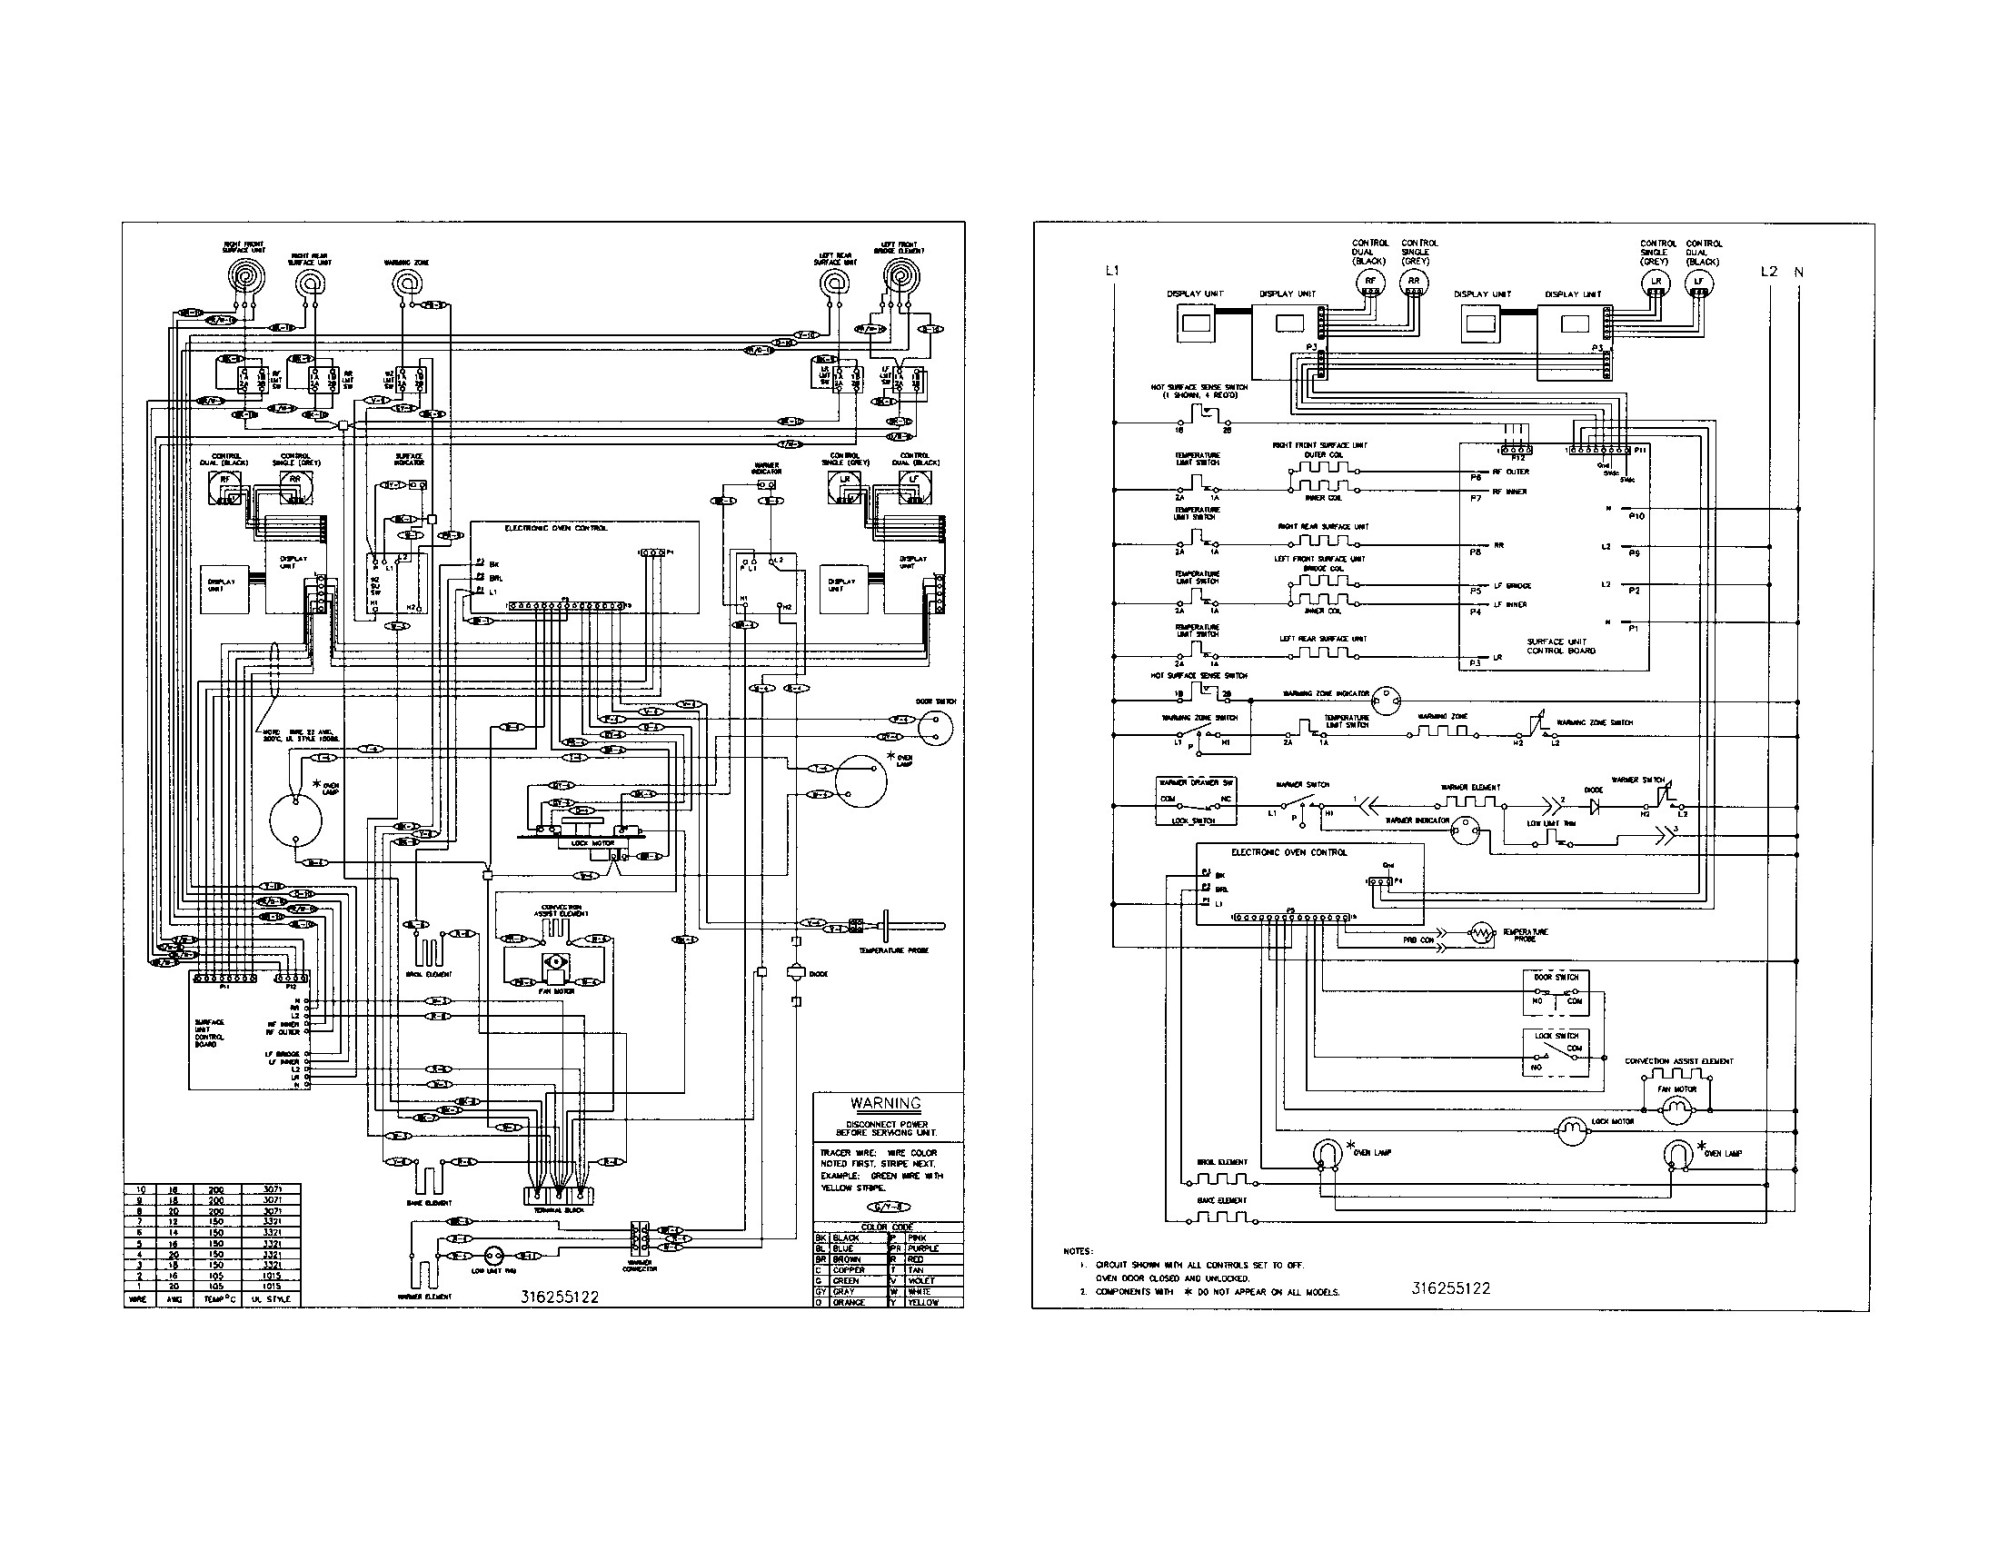 hight resolution of kenmore 790 electric range wiring diagram wiring diagram mega kenmore electric oven wiring diagram